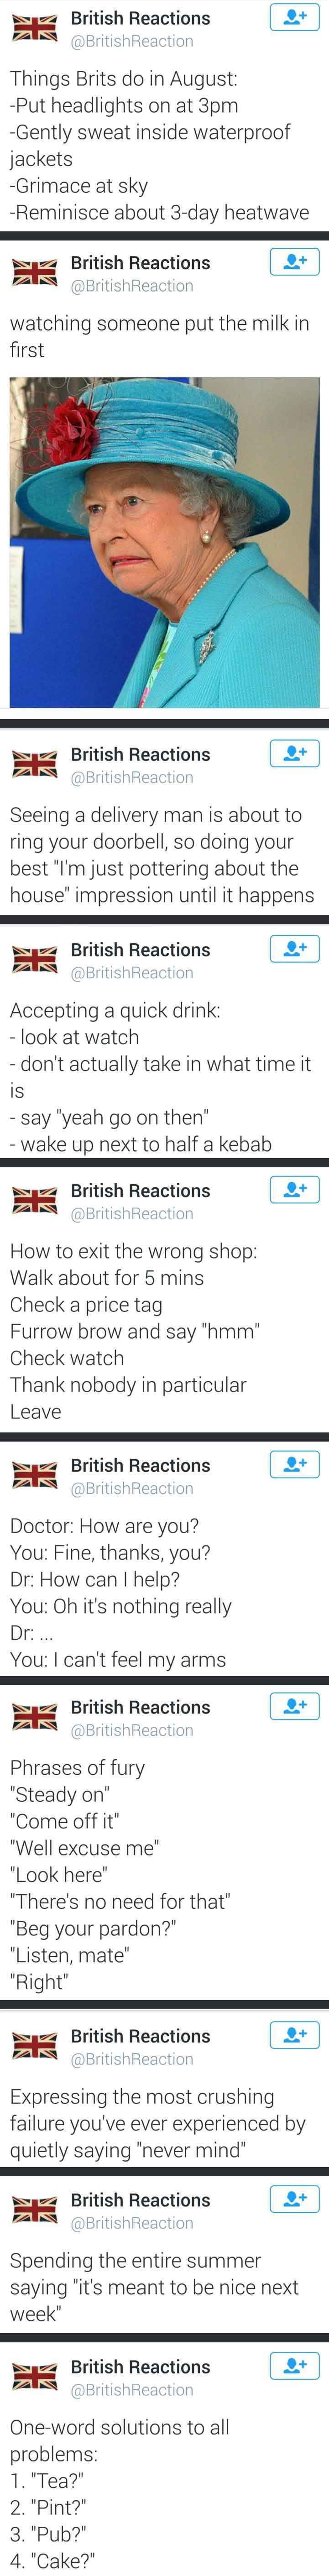 A compilation of Britishness